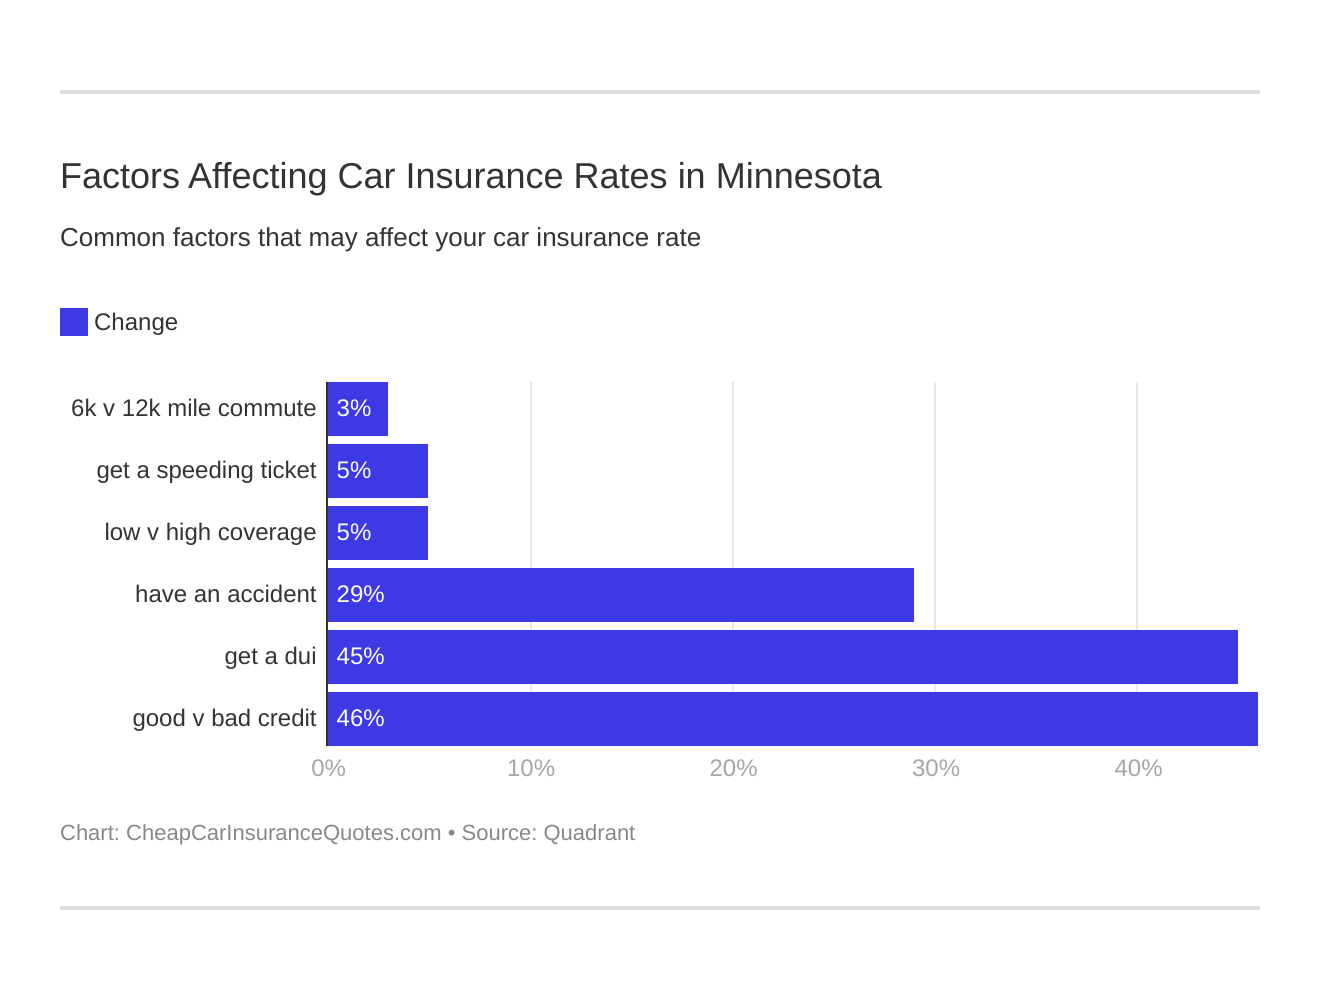 Factors Affecting Car Insurance Rates in Minnesota